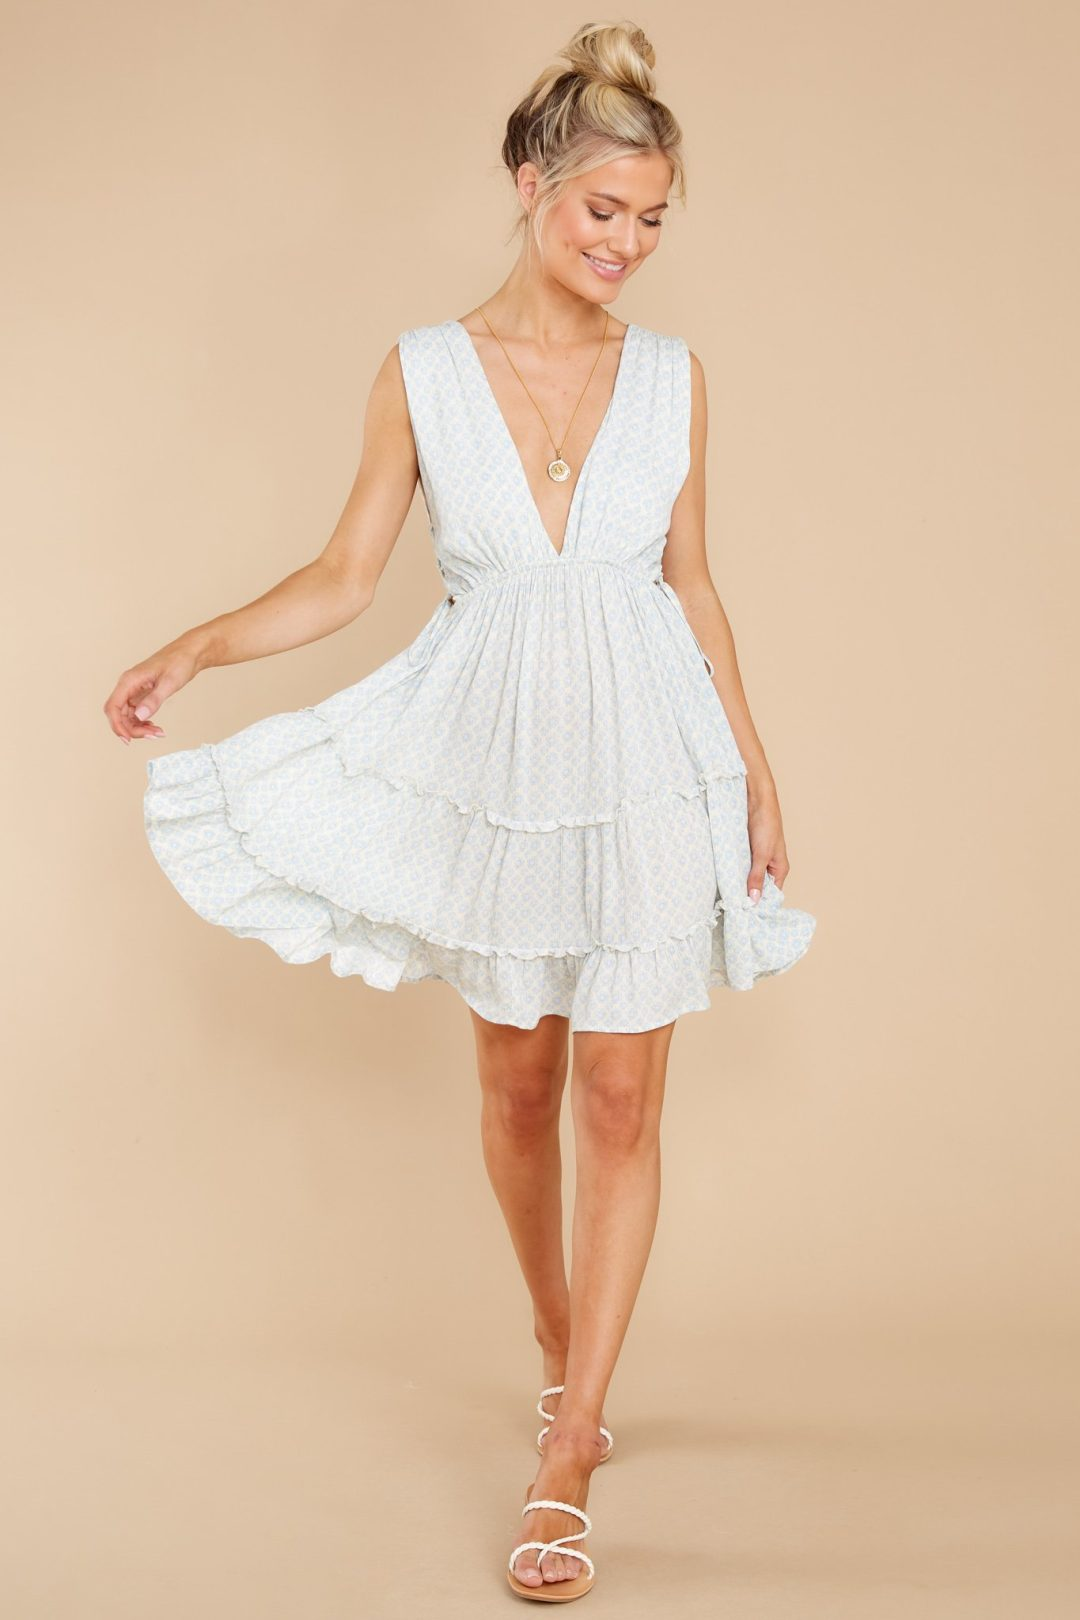 Cute light blue dress from stores like Hello Molly